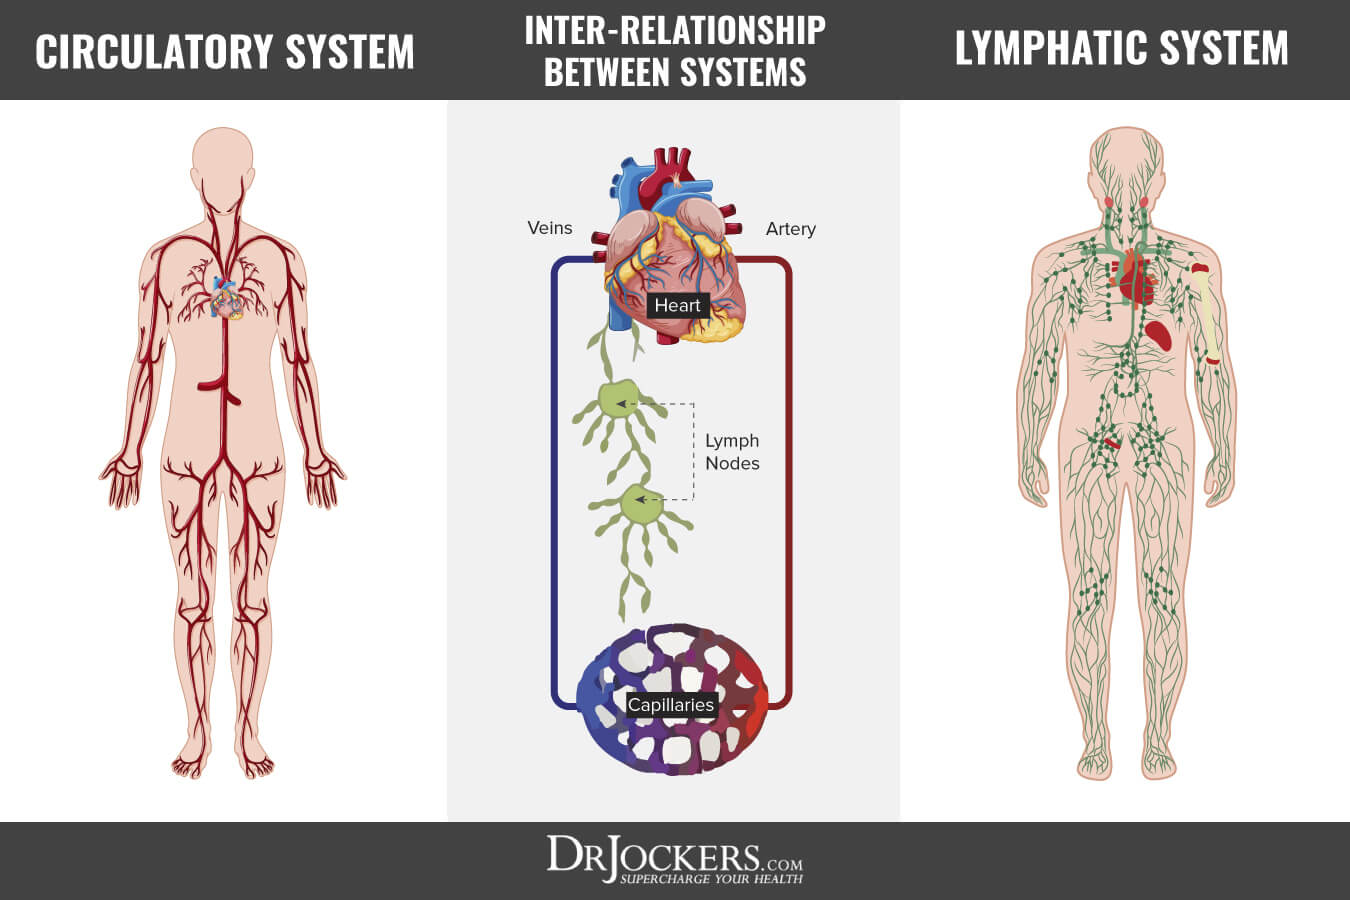 10 Ways To Improve Your Lymphatic System Drjockers Com